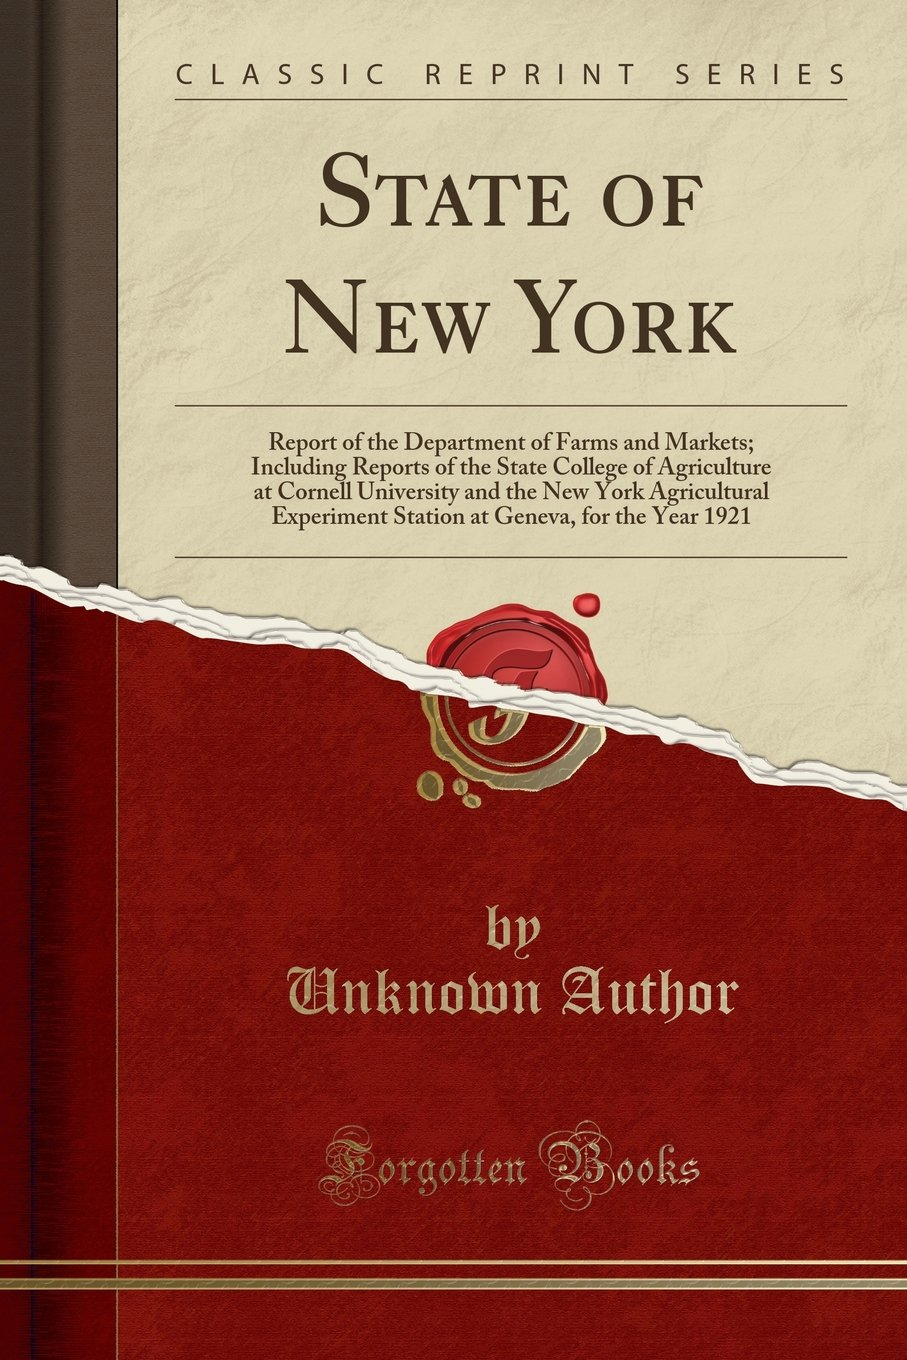 Download State of New York: Report of the Department of Farms and Markets; Including Reports of the State College of Agriculture at Cornell University and the ... Geneva, for the Year 1921 (Classic Reprint) pdf